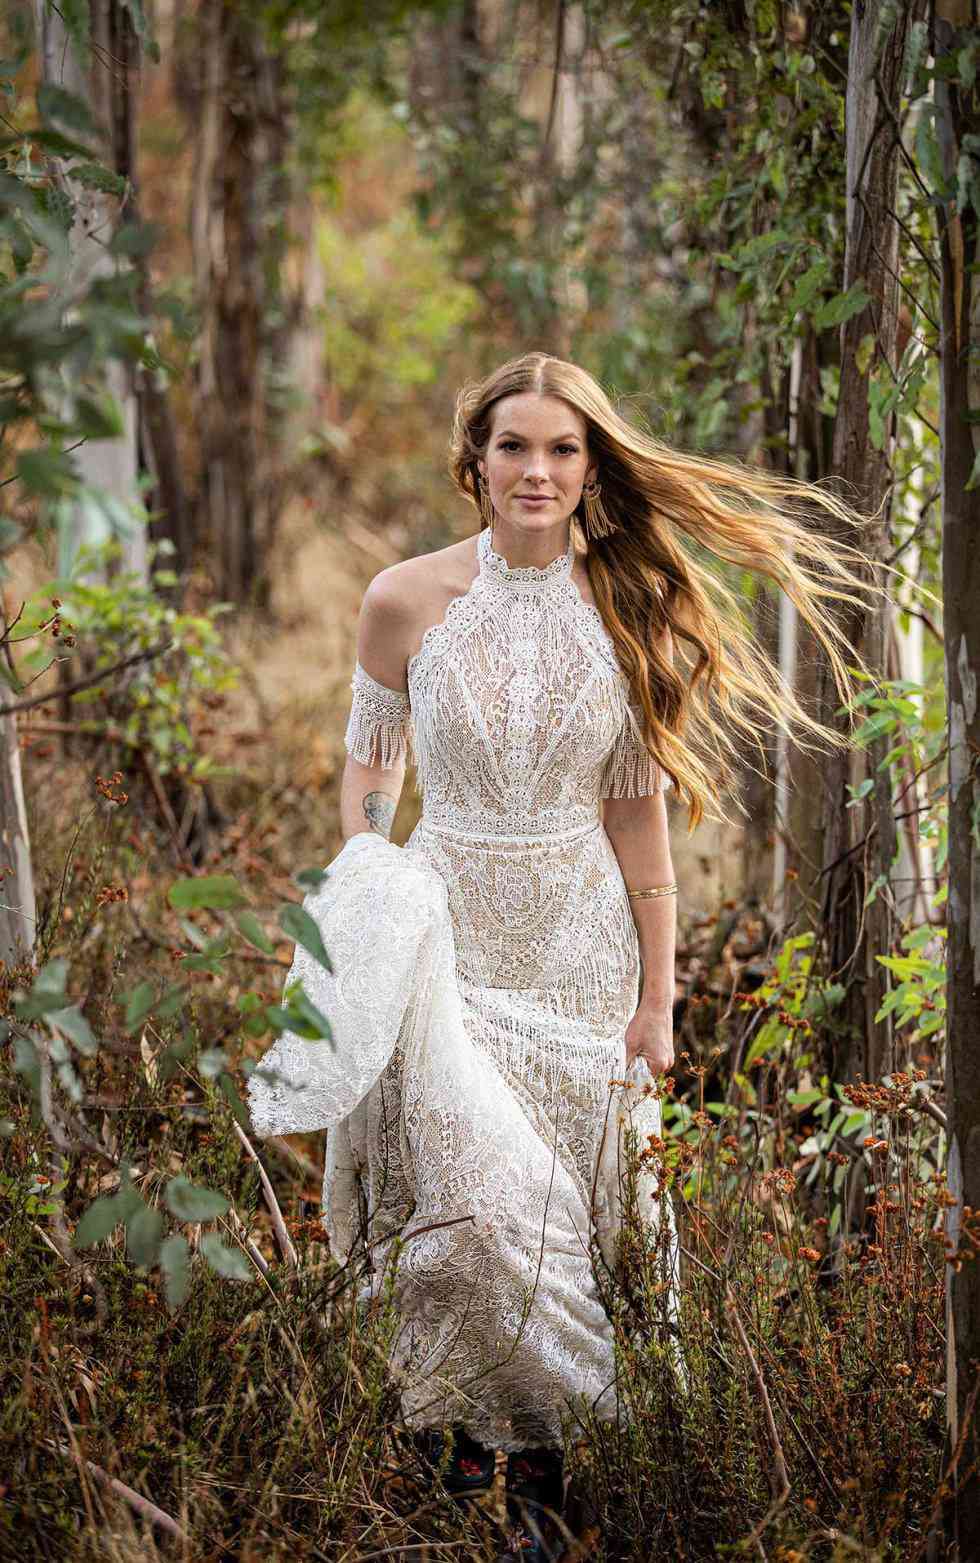 Model in lace fringe wedding gown